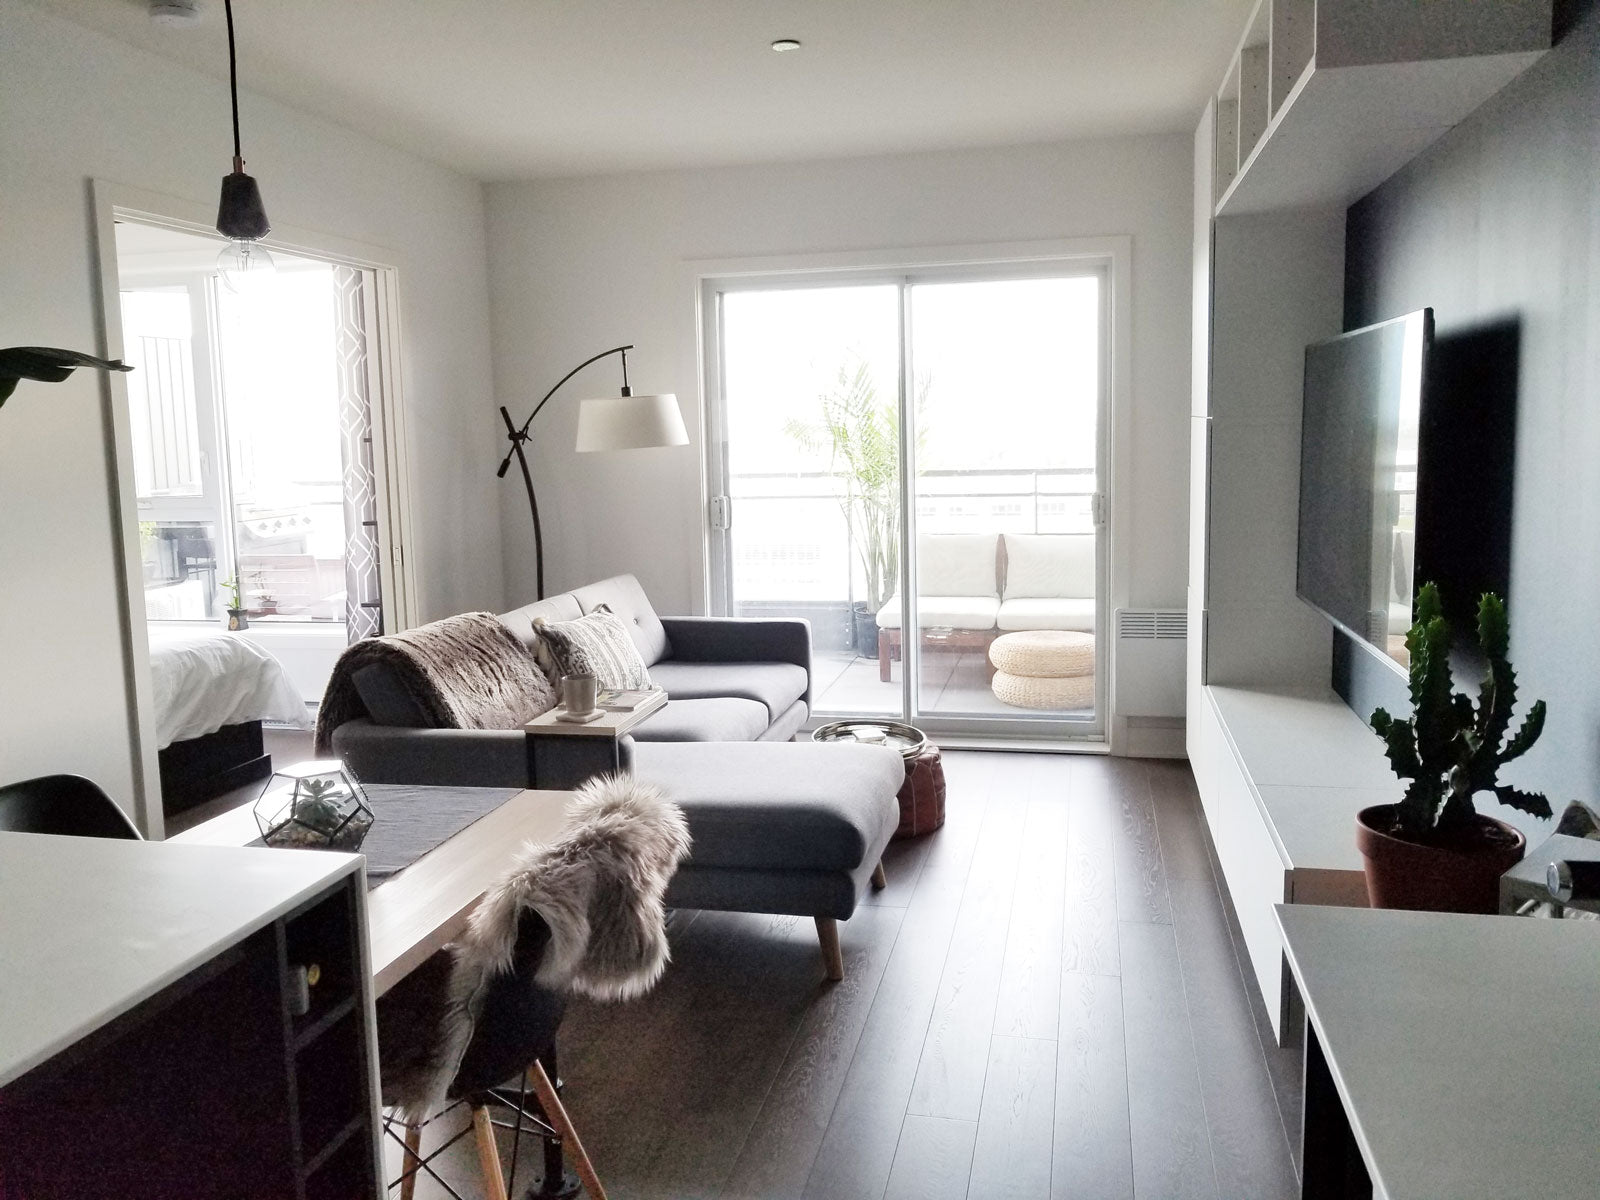 This small but impeccably designed canadian apartment is modern, bright and airy. See the full home tour on www.lovetohome.co.uk